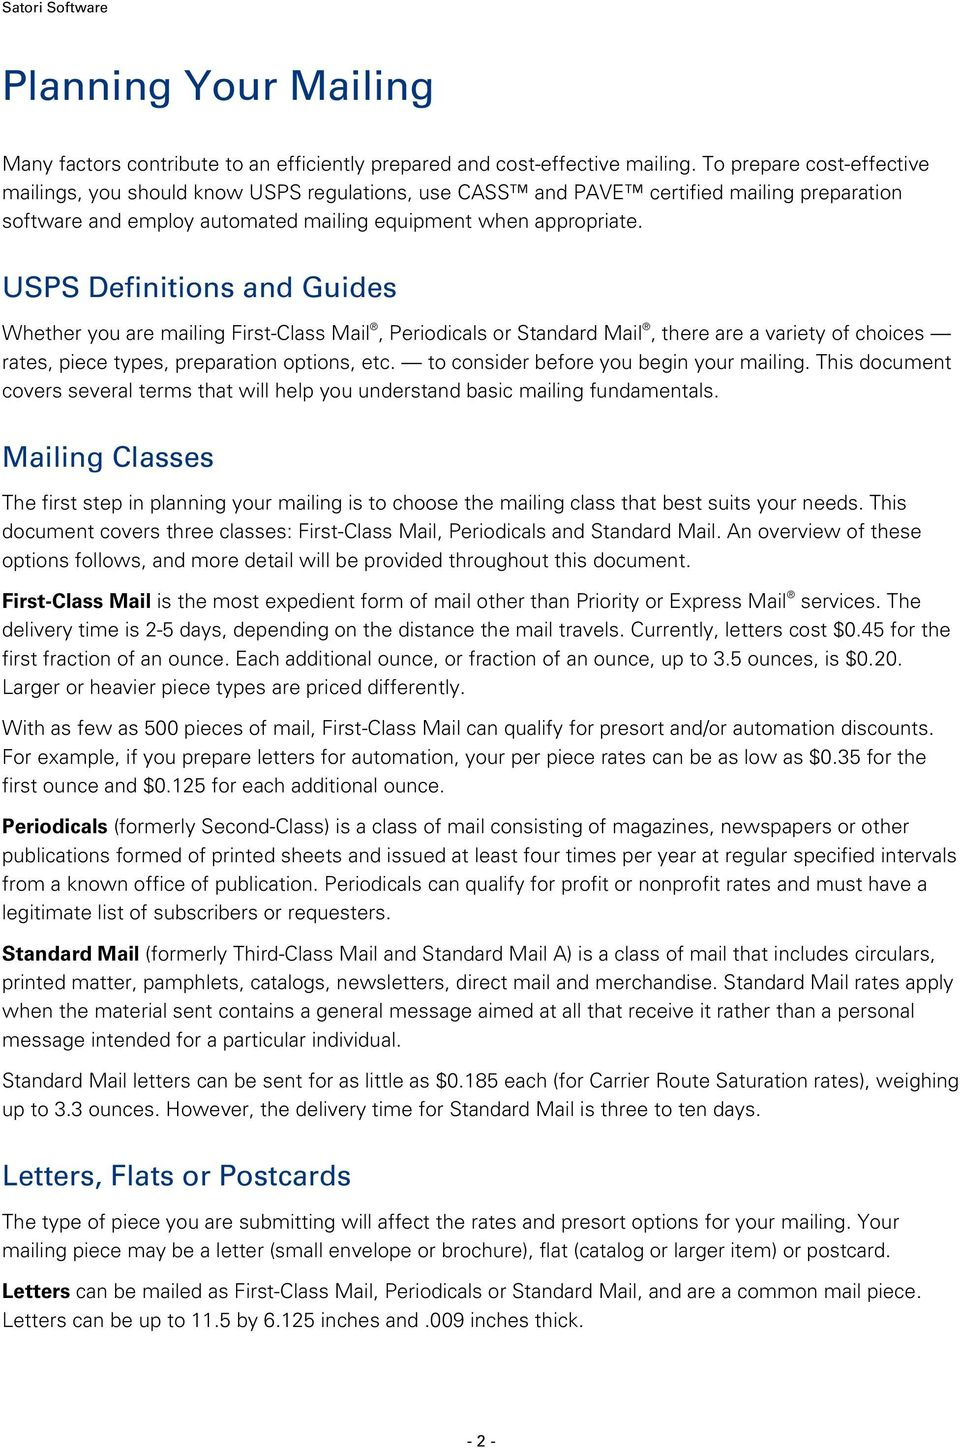 USPS Definitions and Guides Whether you are mailing First-Class Mail, Periodicals or Standard Mail, there are a variety of choices rates, piece types, preparation options, etc.